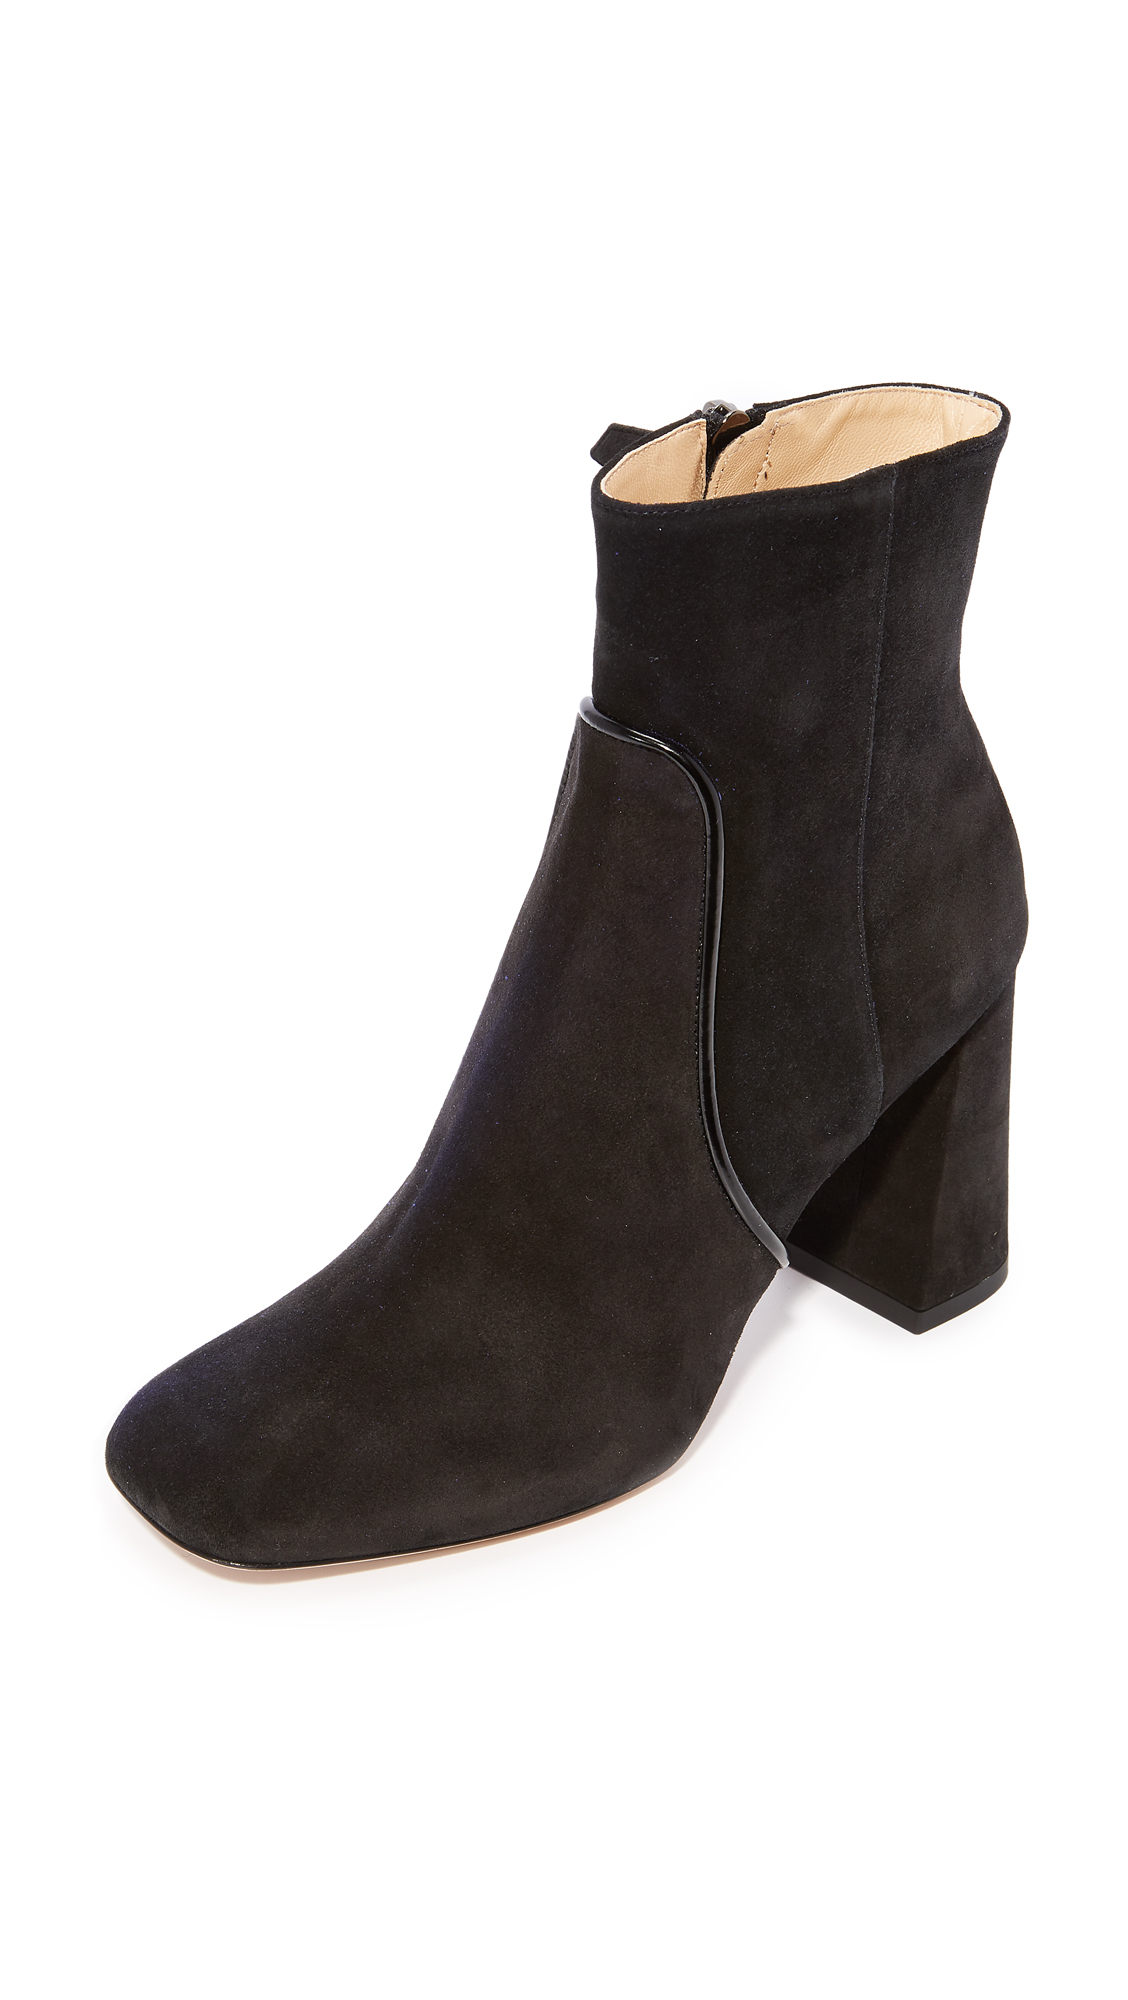 Marion Parke Chrissie Booties - Black